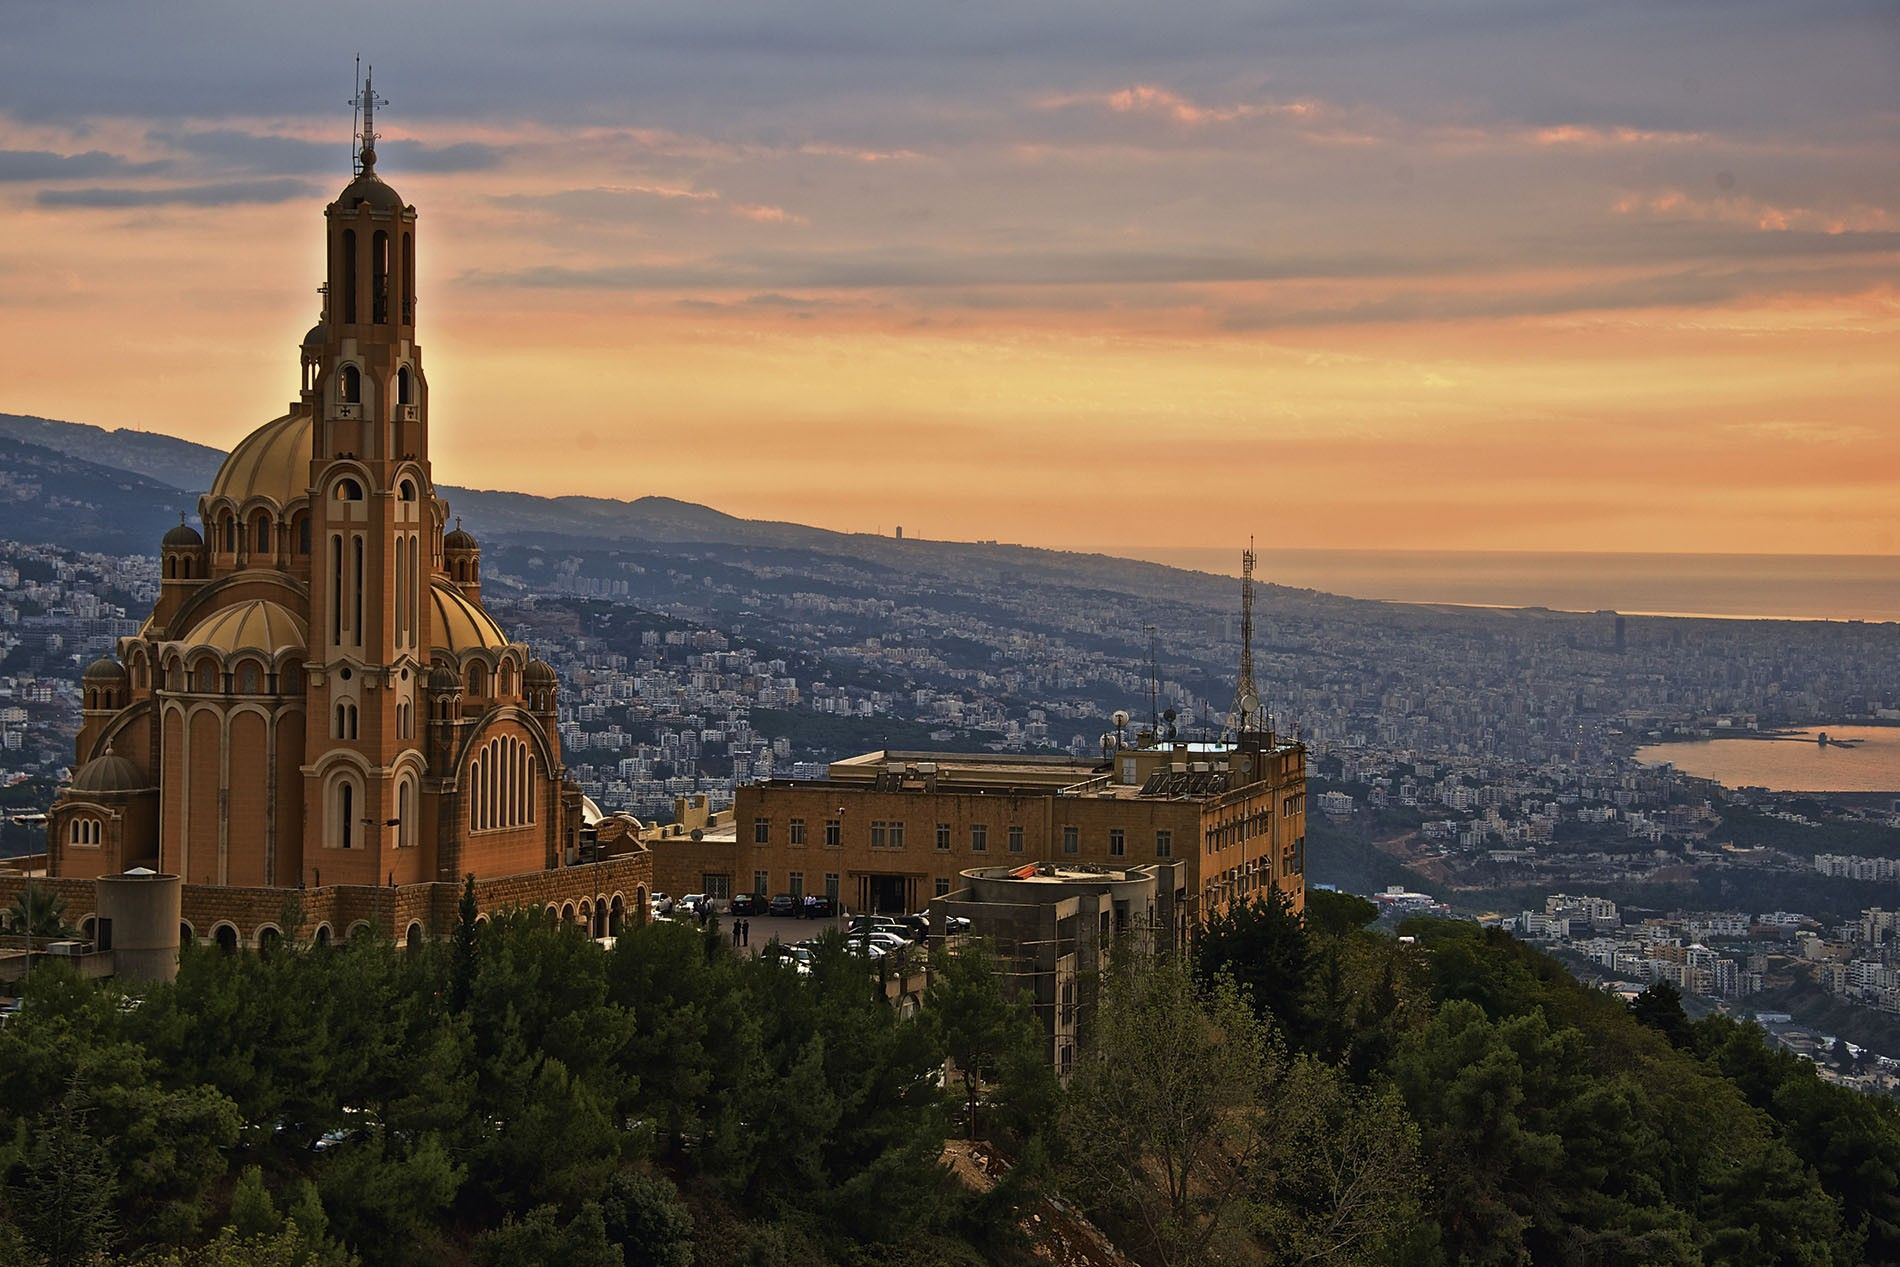 Sunset view of Beirut, the fast-paced capital and largest city of Lebanon, from Harissa village.